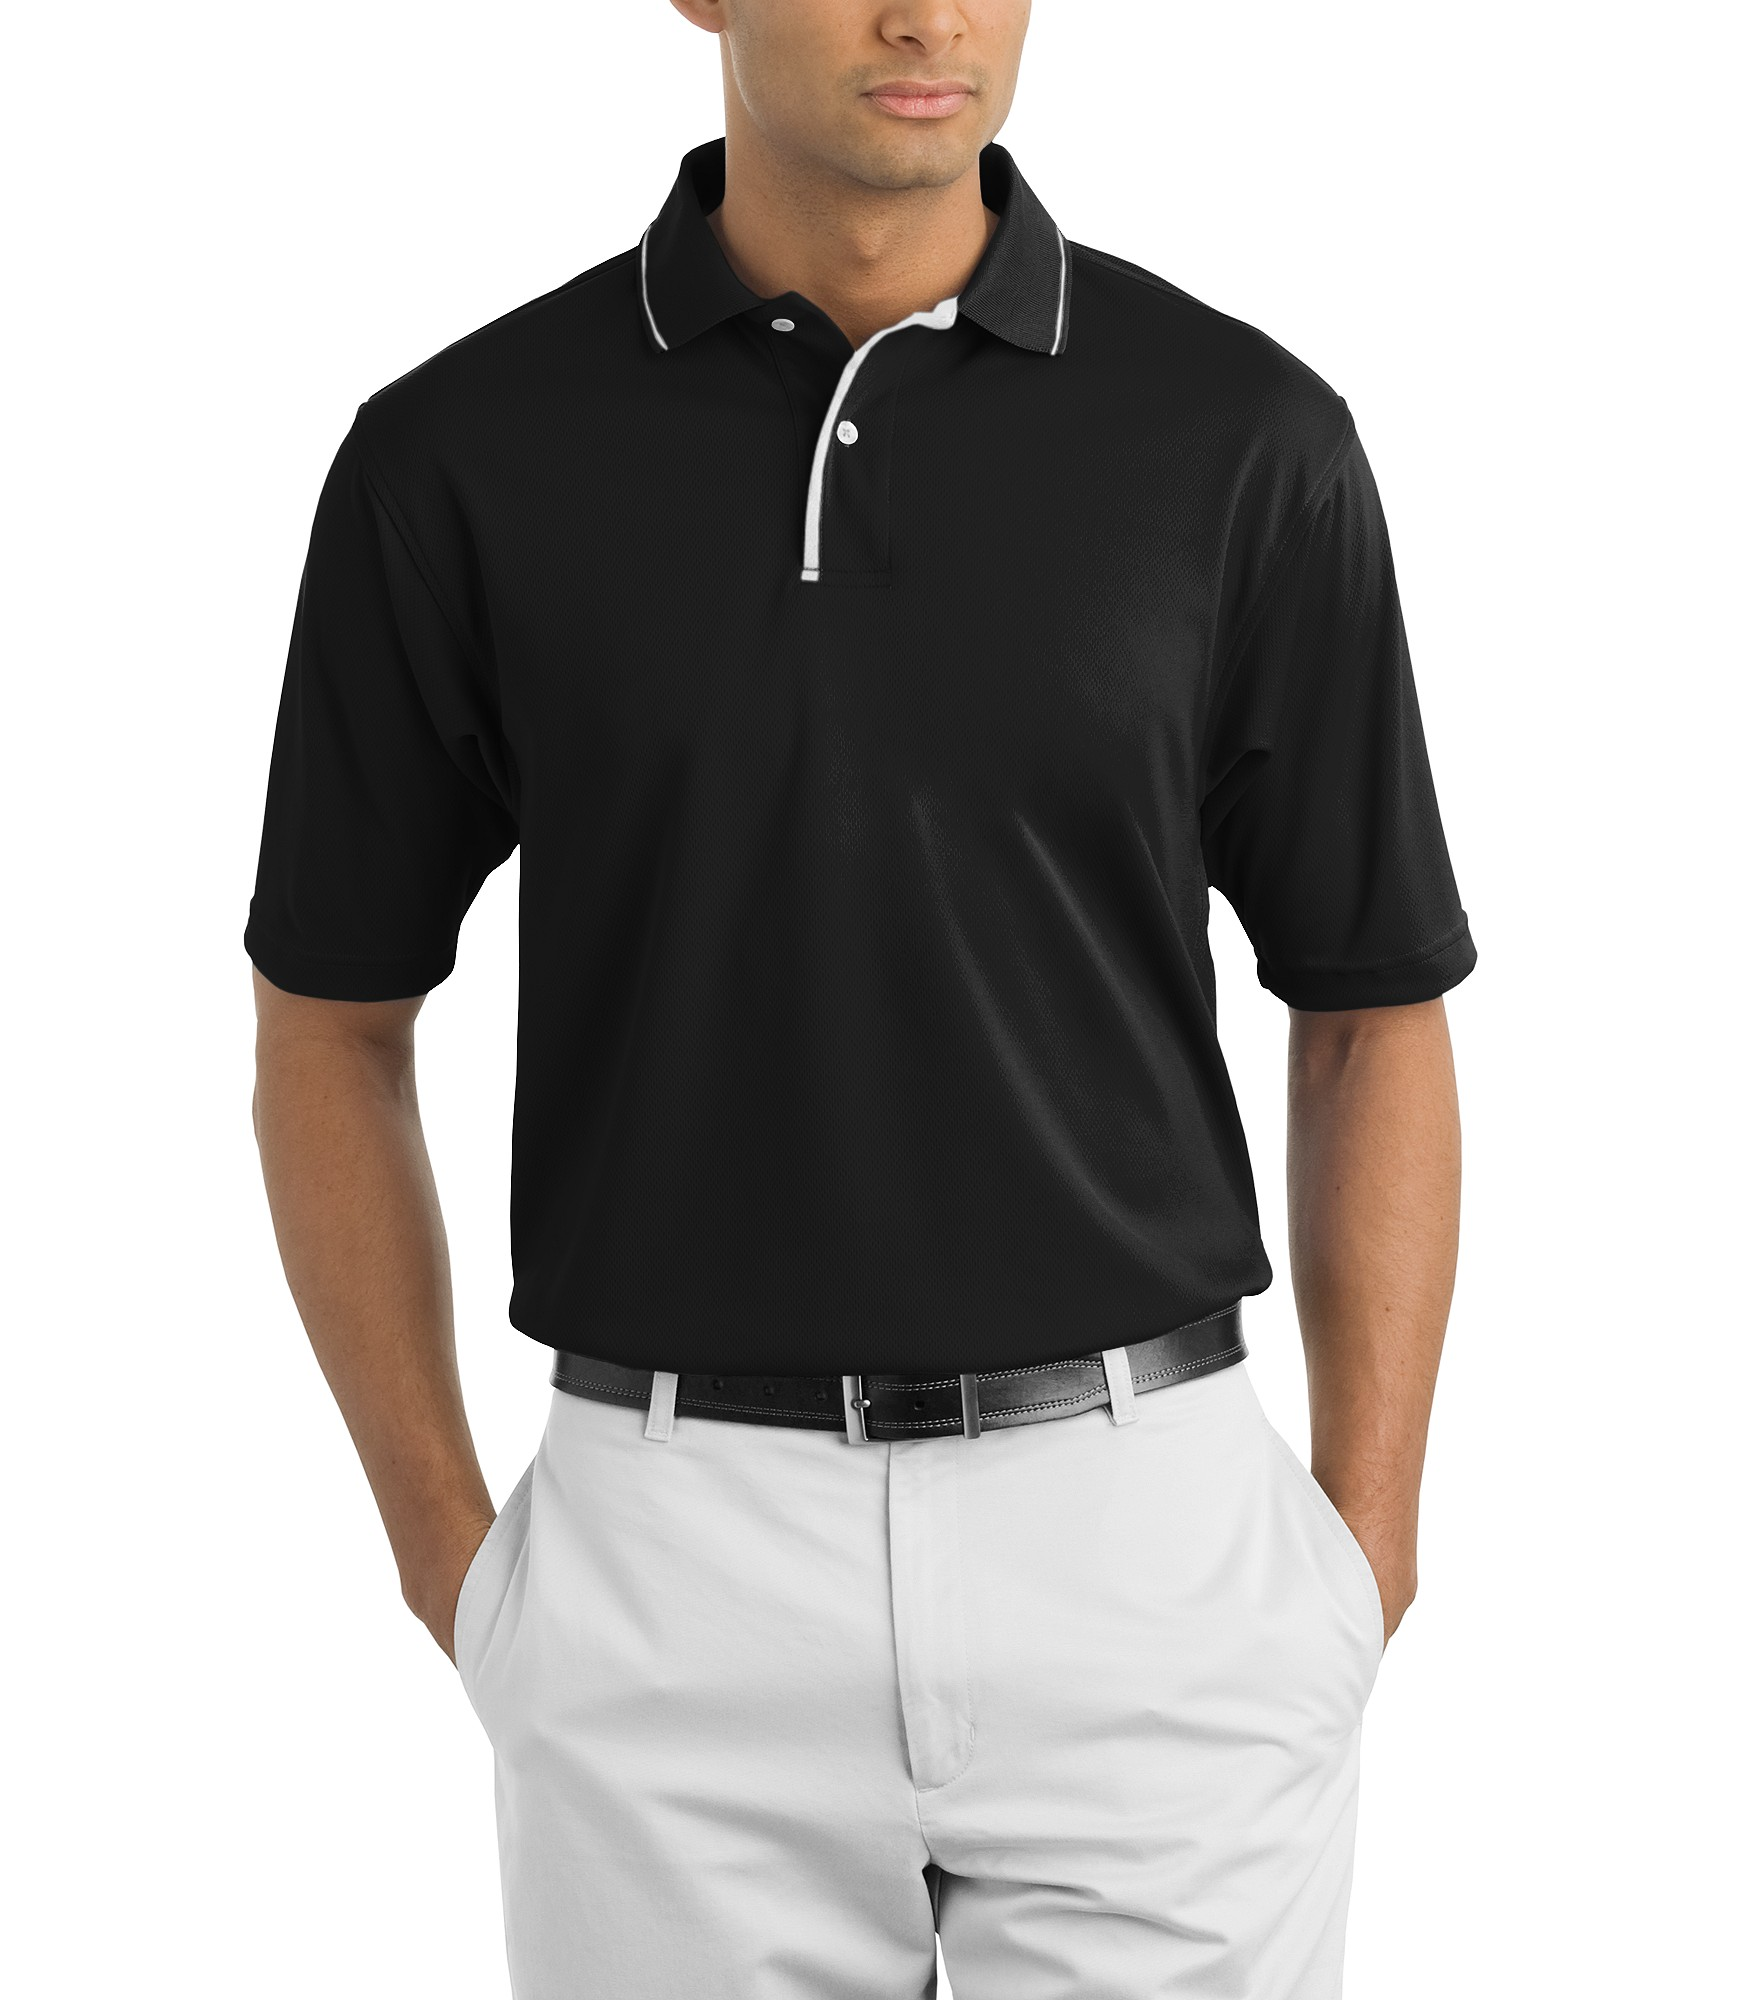 a790cd80d4 ... Sport-Tek® Dri-Mesh® Polo with Tipped Collar and Piping. Zoom. Loading  zoom